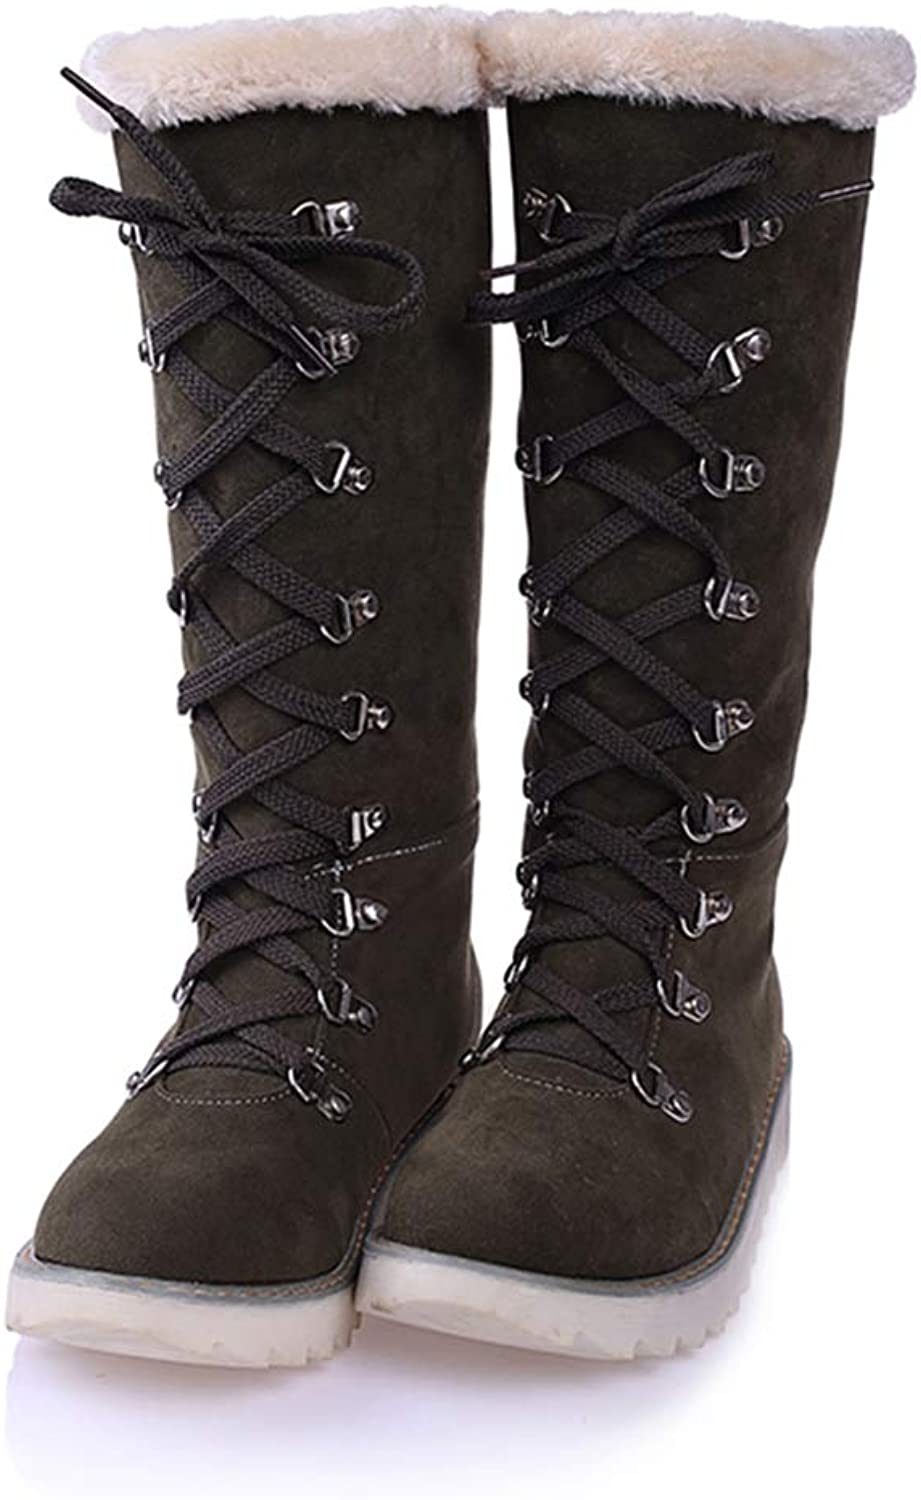 Hoxekle Woman Snow Boots Lace Up Slip On Round Toe Casual Comfortable Warm Plush Anti-Slip Winter Knee High Boots